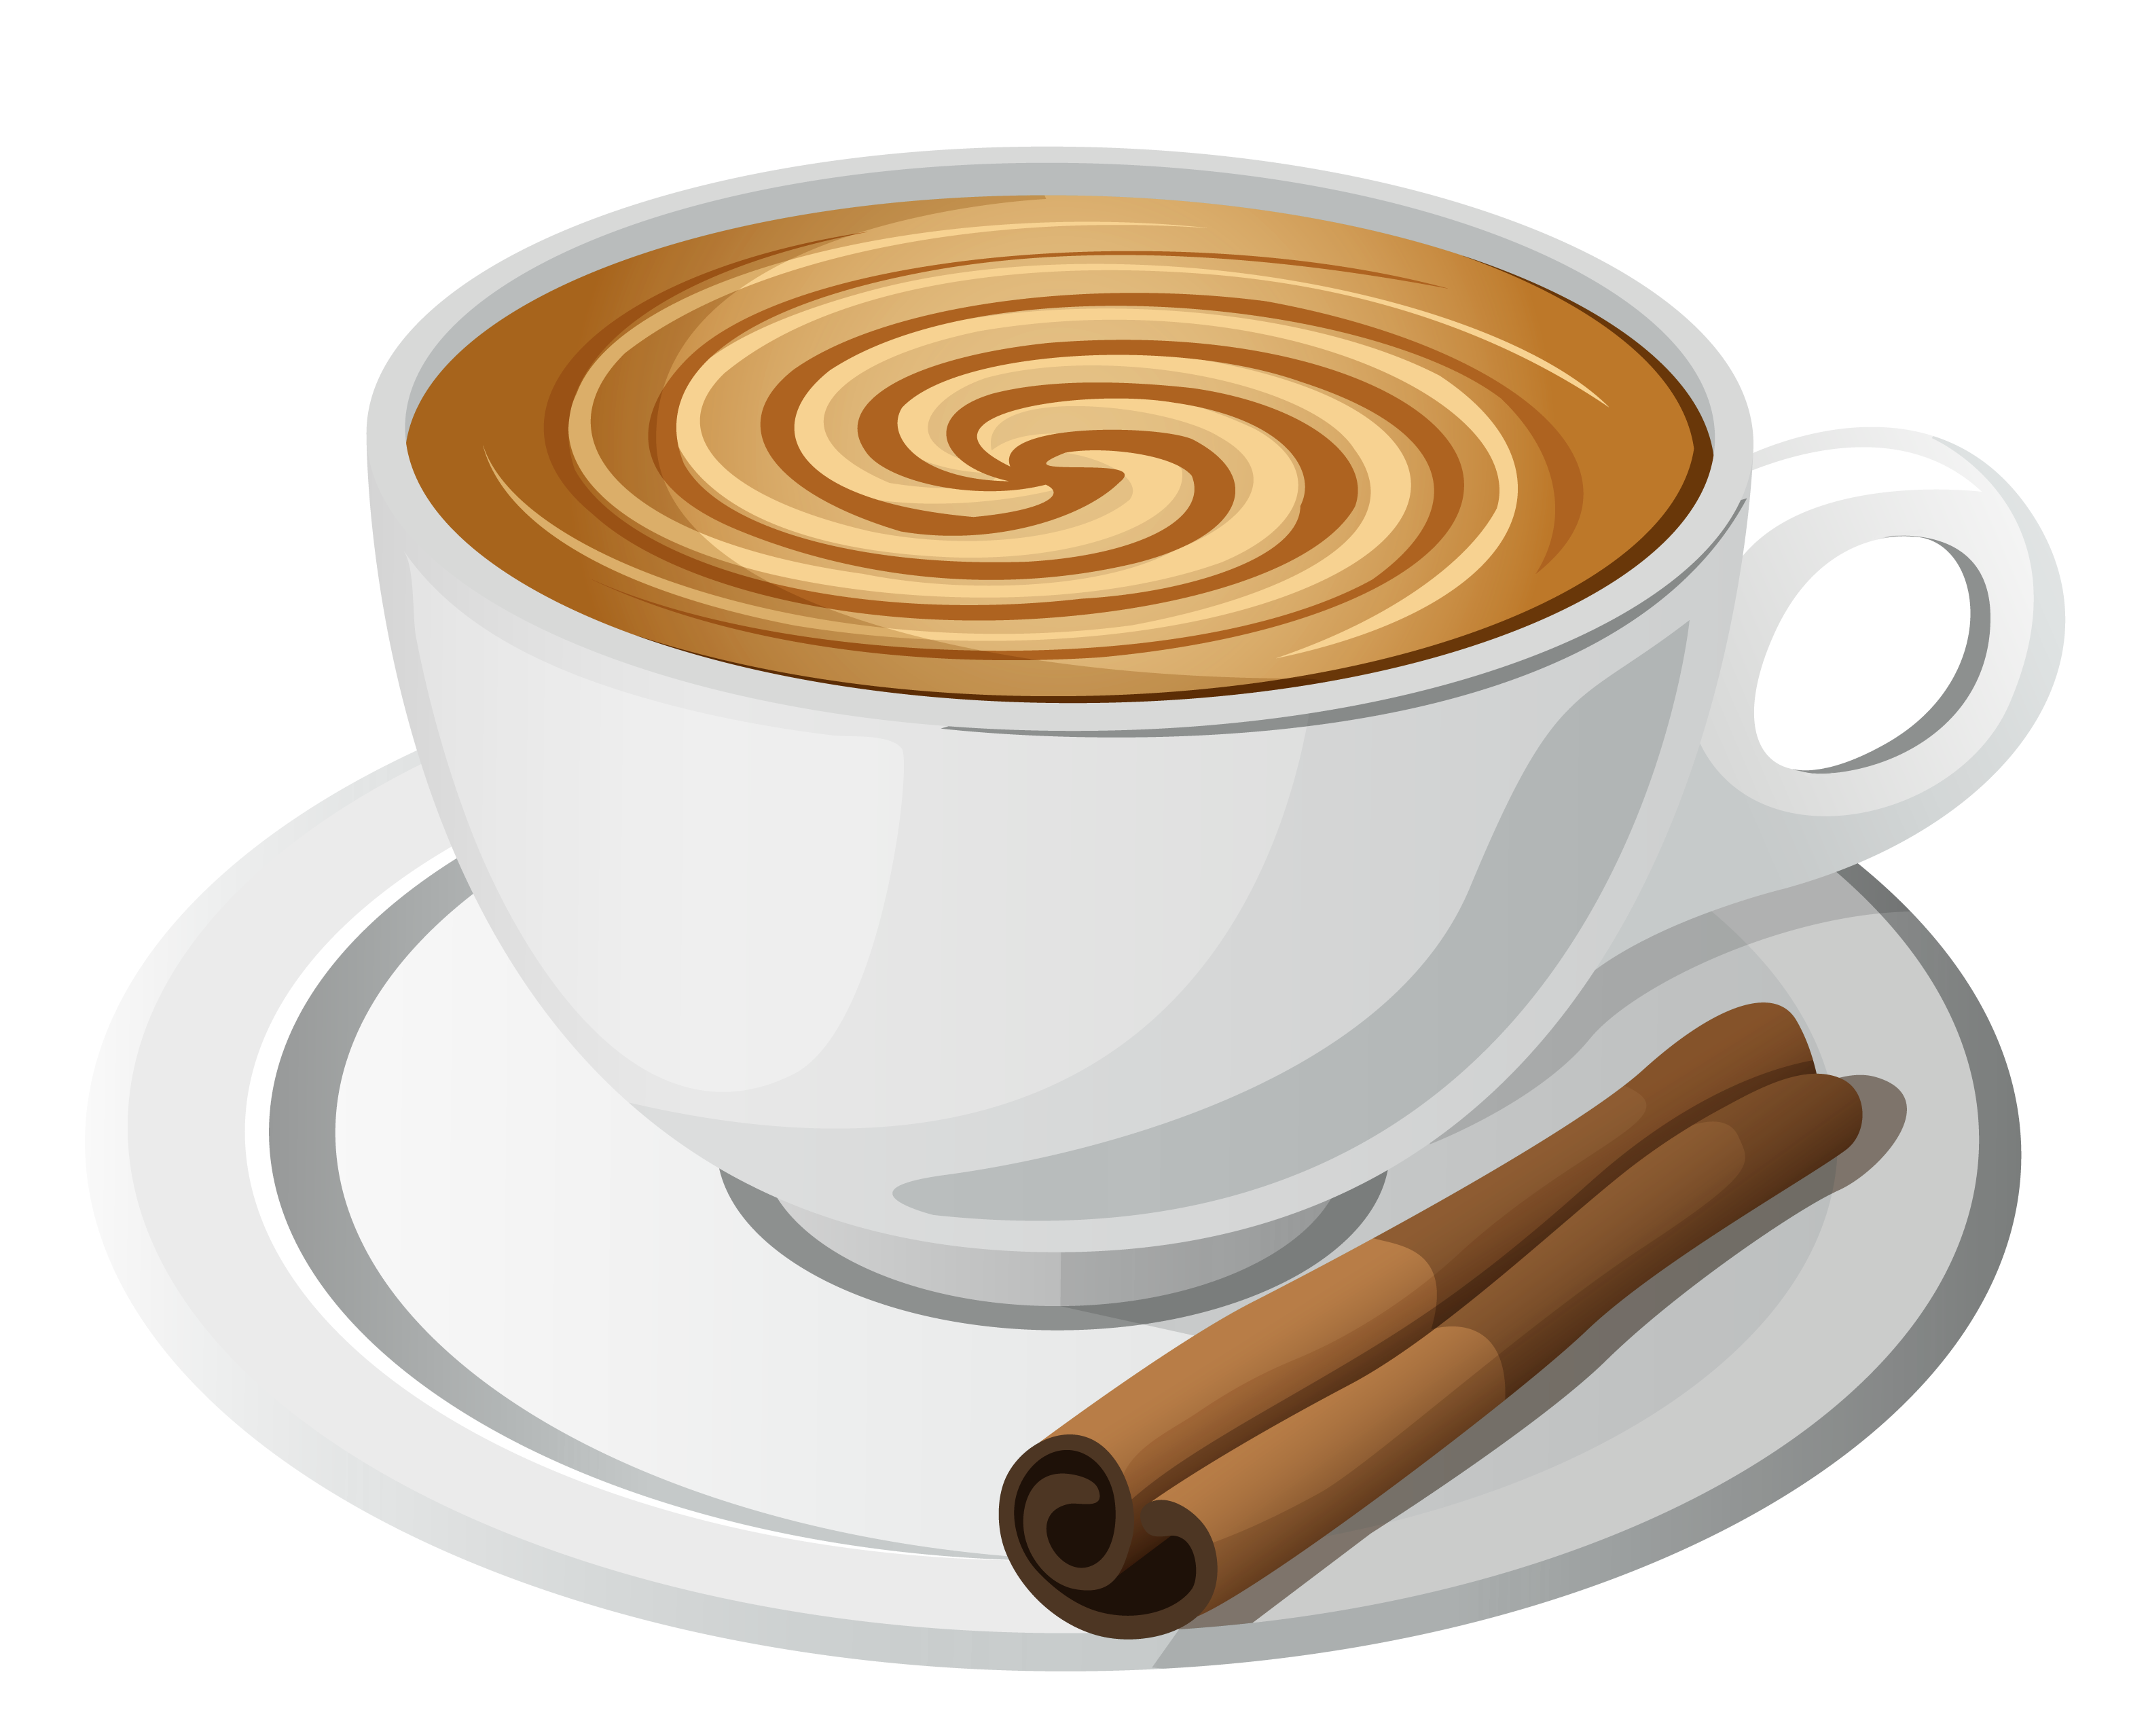 Coffee clipart #10, Download drawings